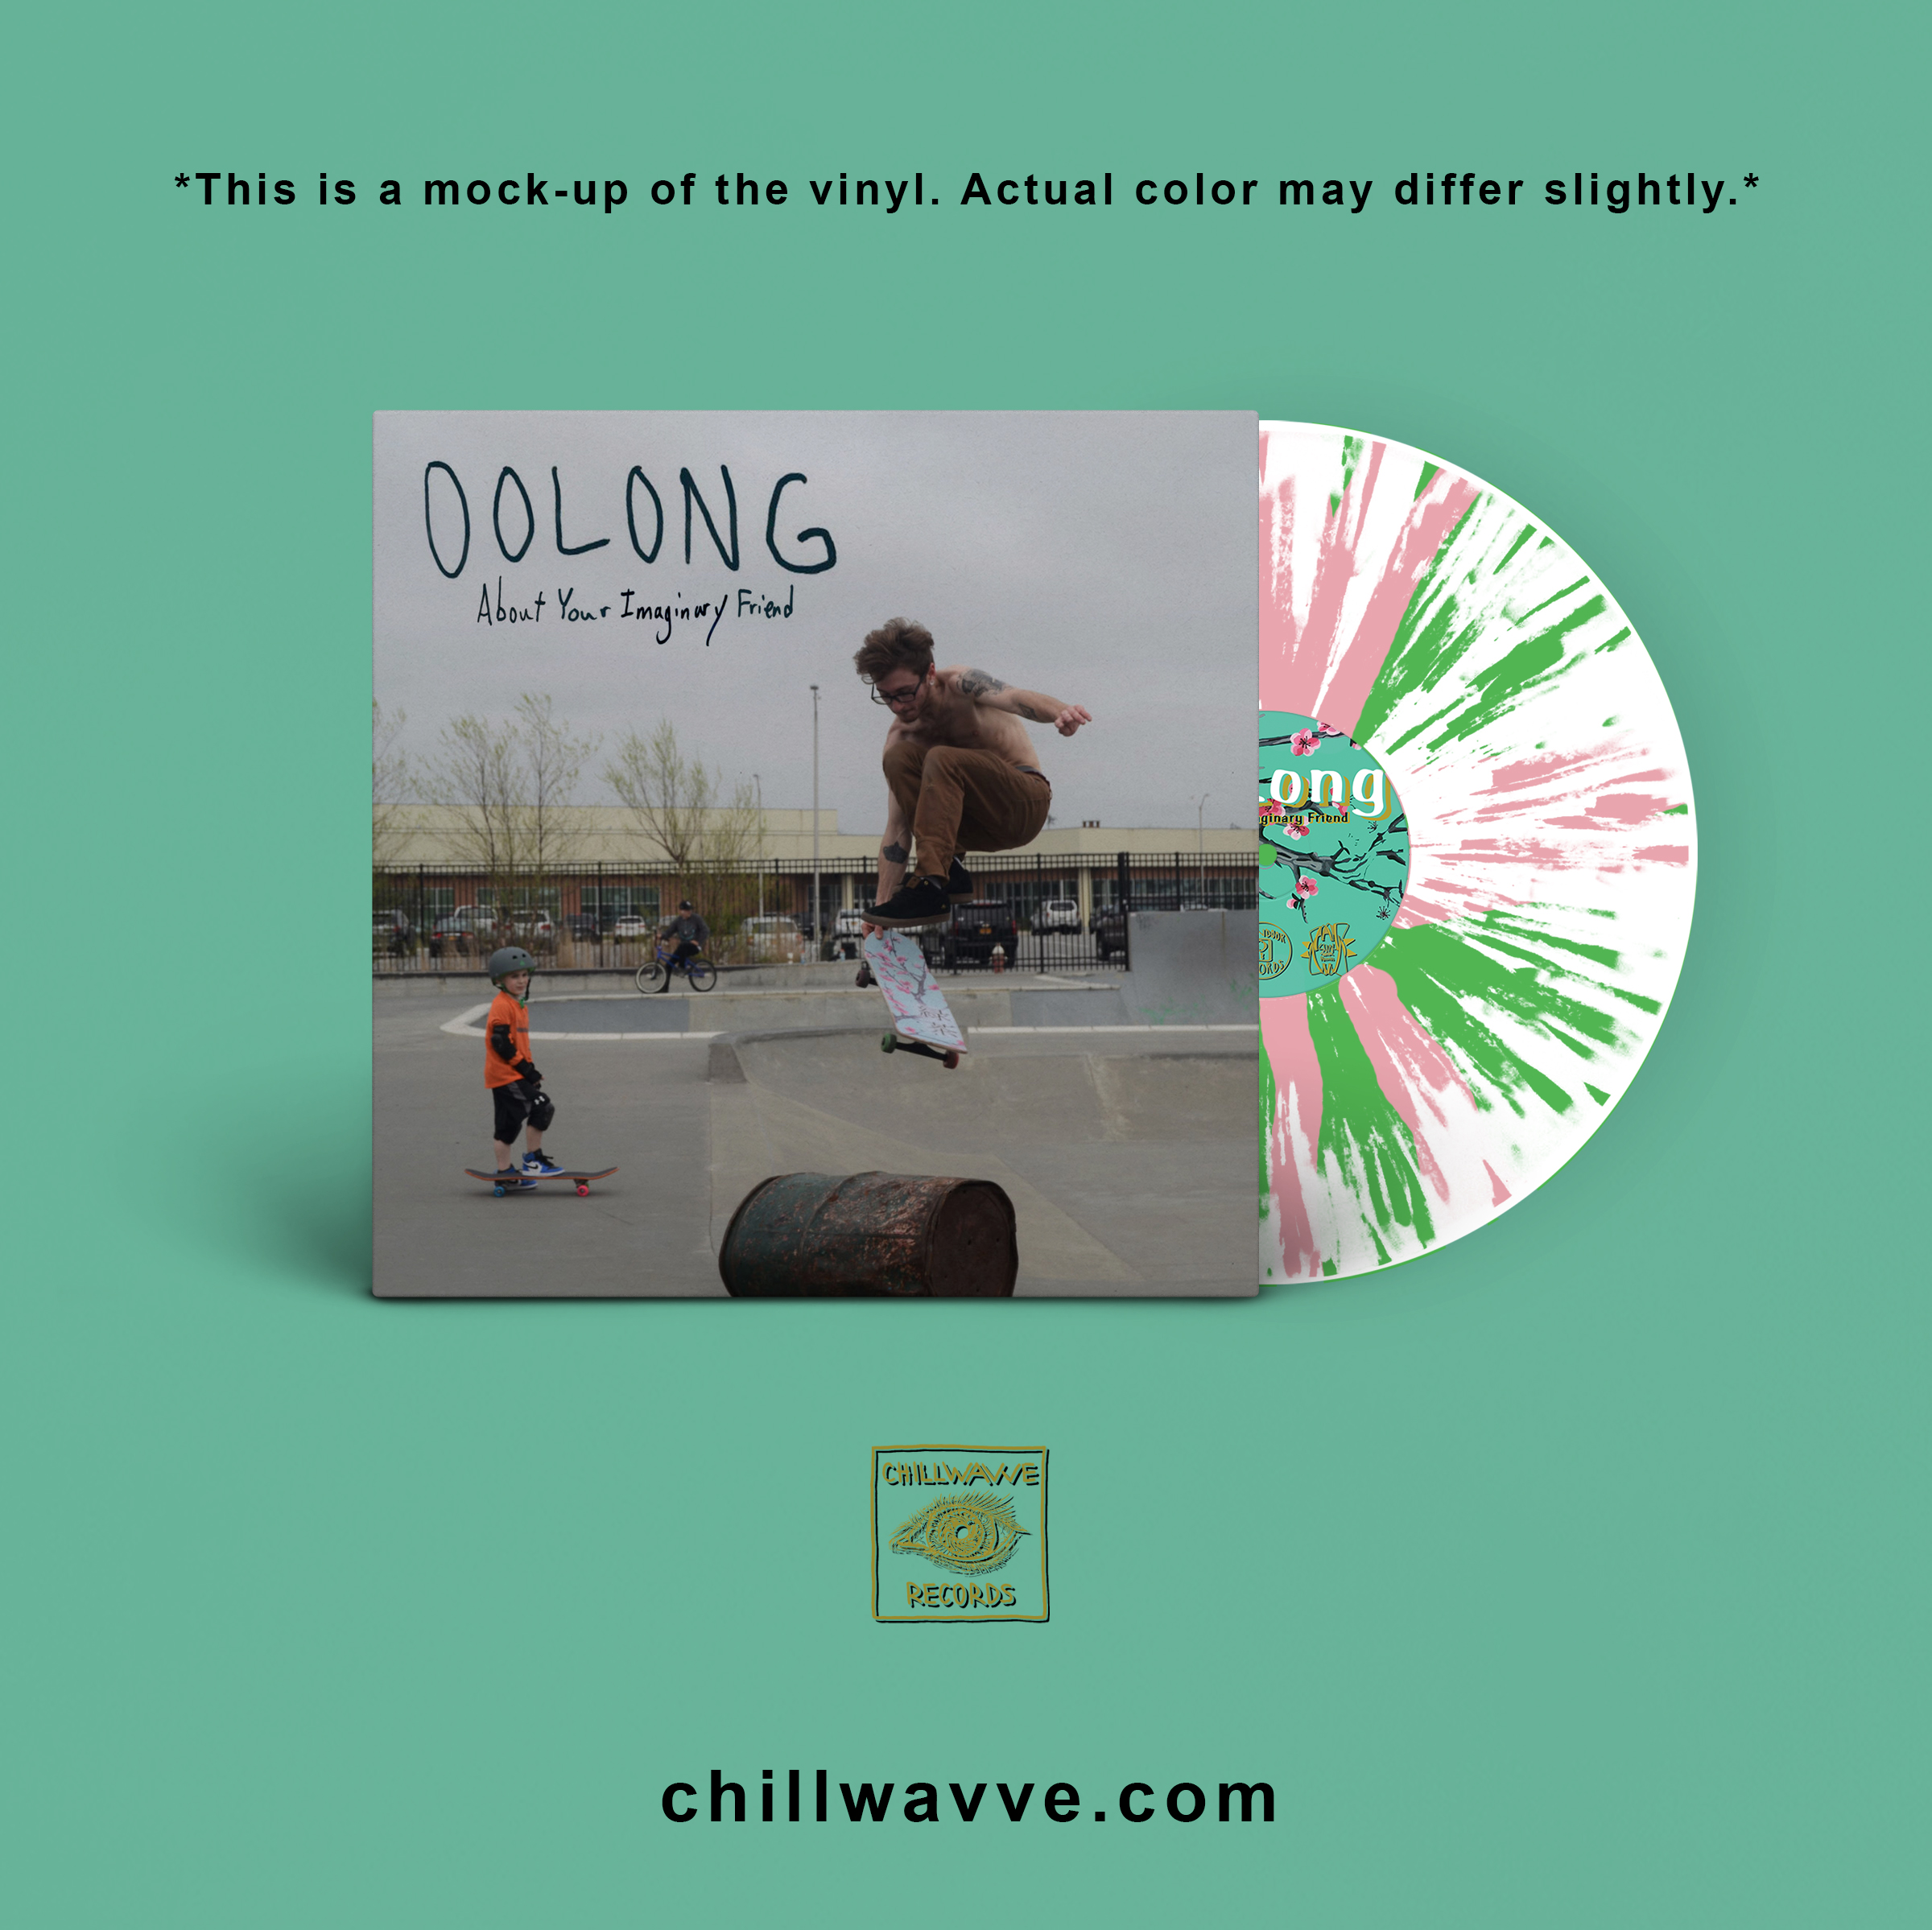 Oolong - About Your Imaginary Friend (Vinyl)